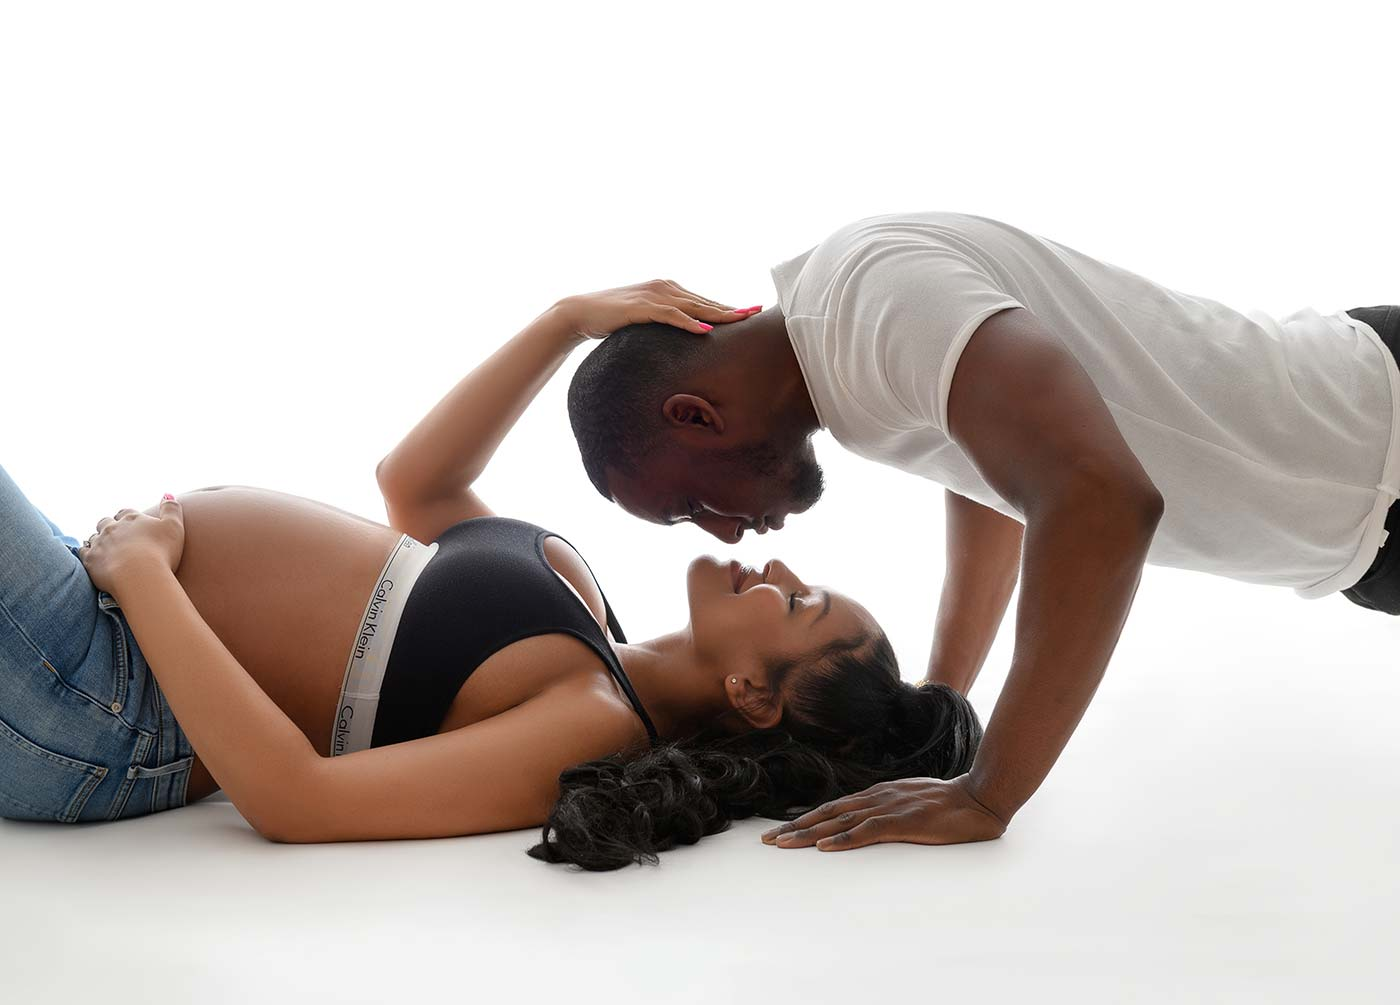 pregnant couple kissing while lying on the floor with Calvin Klein lingerie intimate portrait